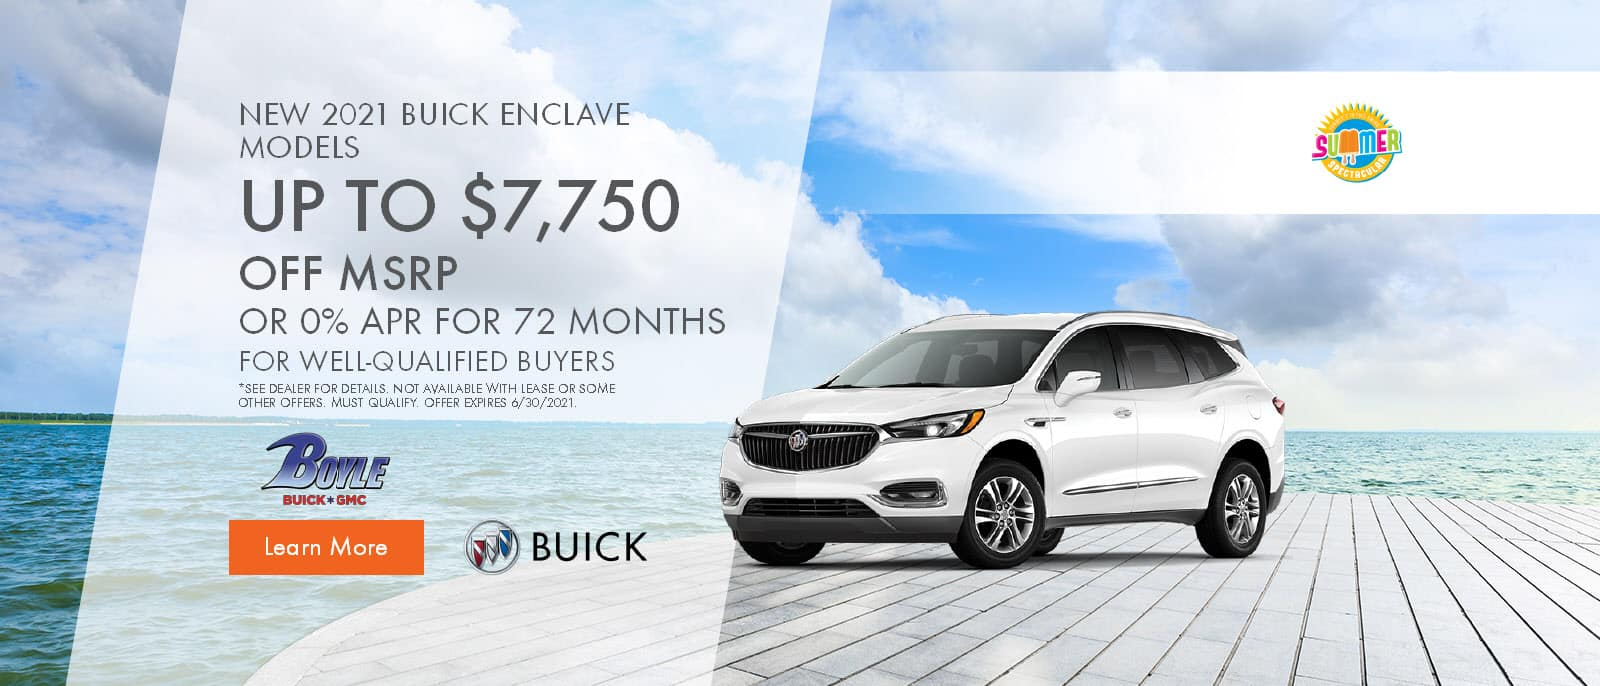 Up to $7,750 Off MSRP